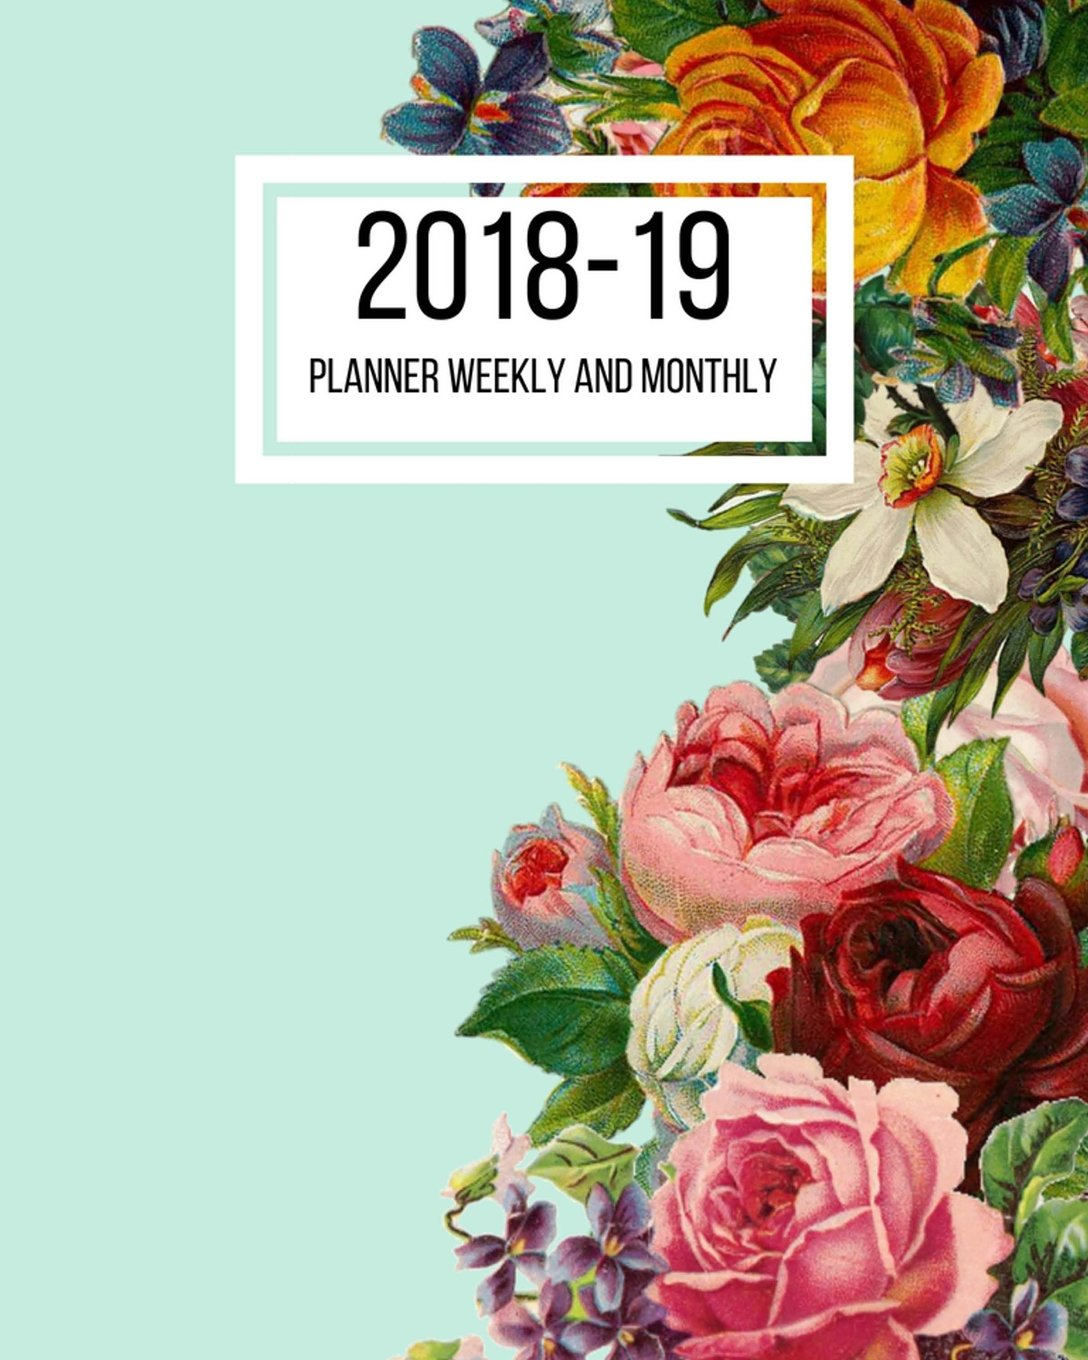 Read Online 2018-19 Planner Weekly and Monthly: July 2018 to June 2019 Planner - 8 x 10 Inches - Paperback (Academic Planner One) (Volume 10) pdf epub